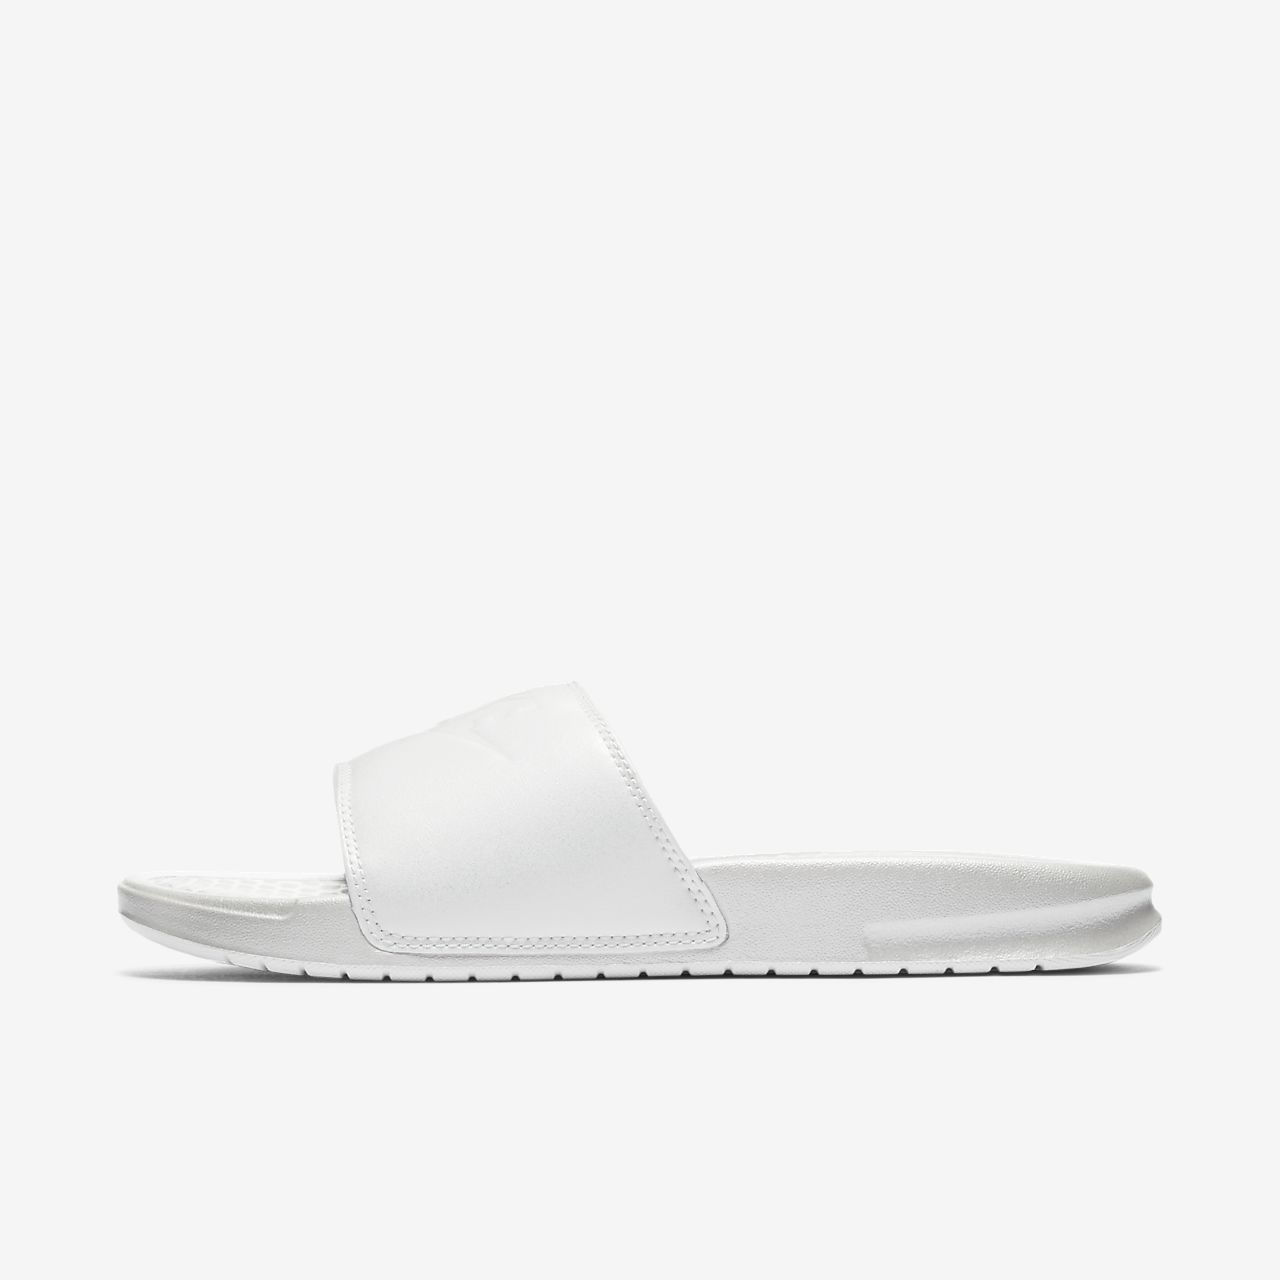 Nike Benassi Metallic QS Women's Slide